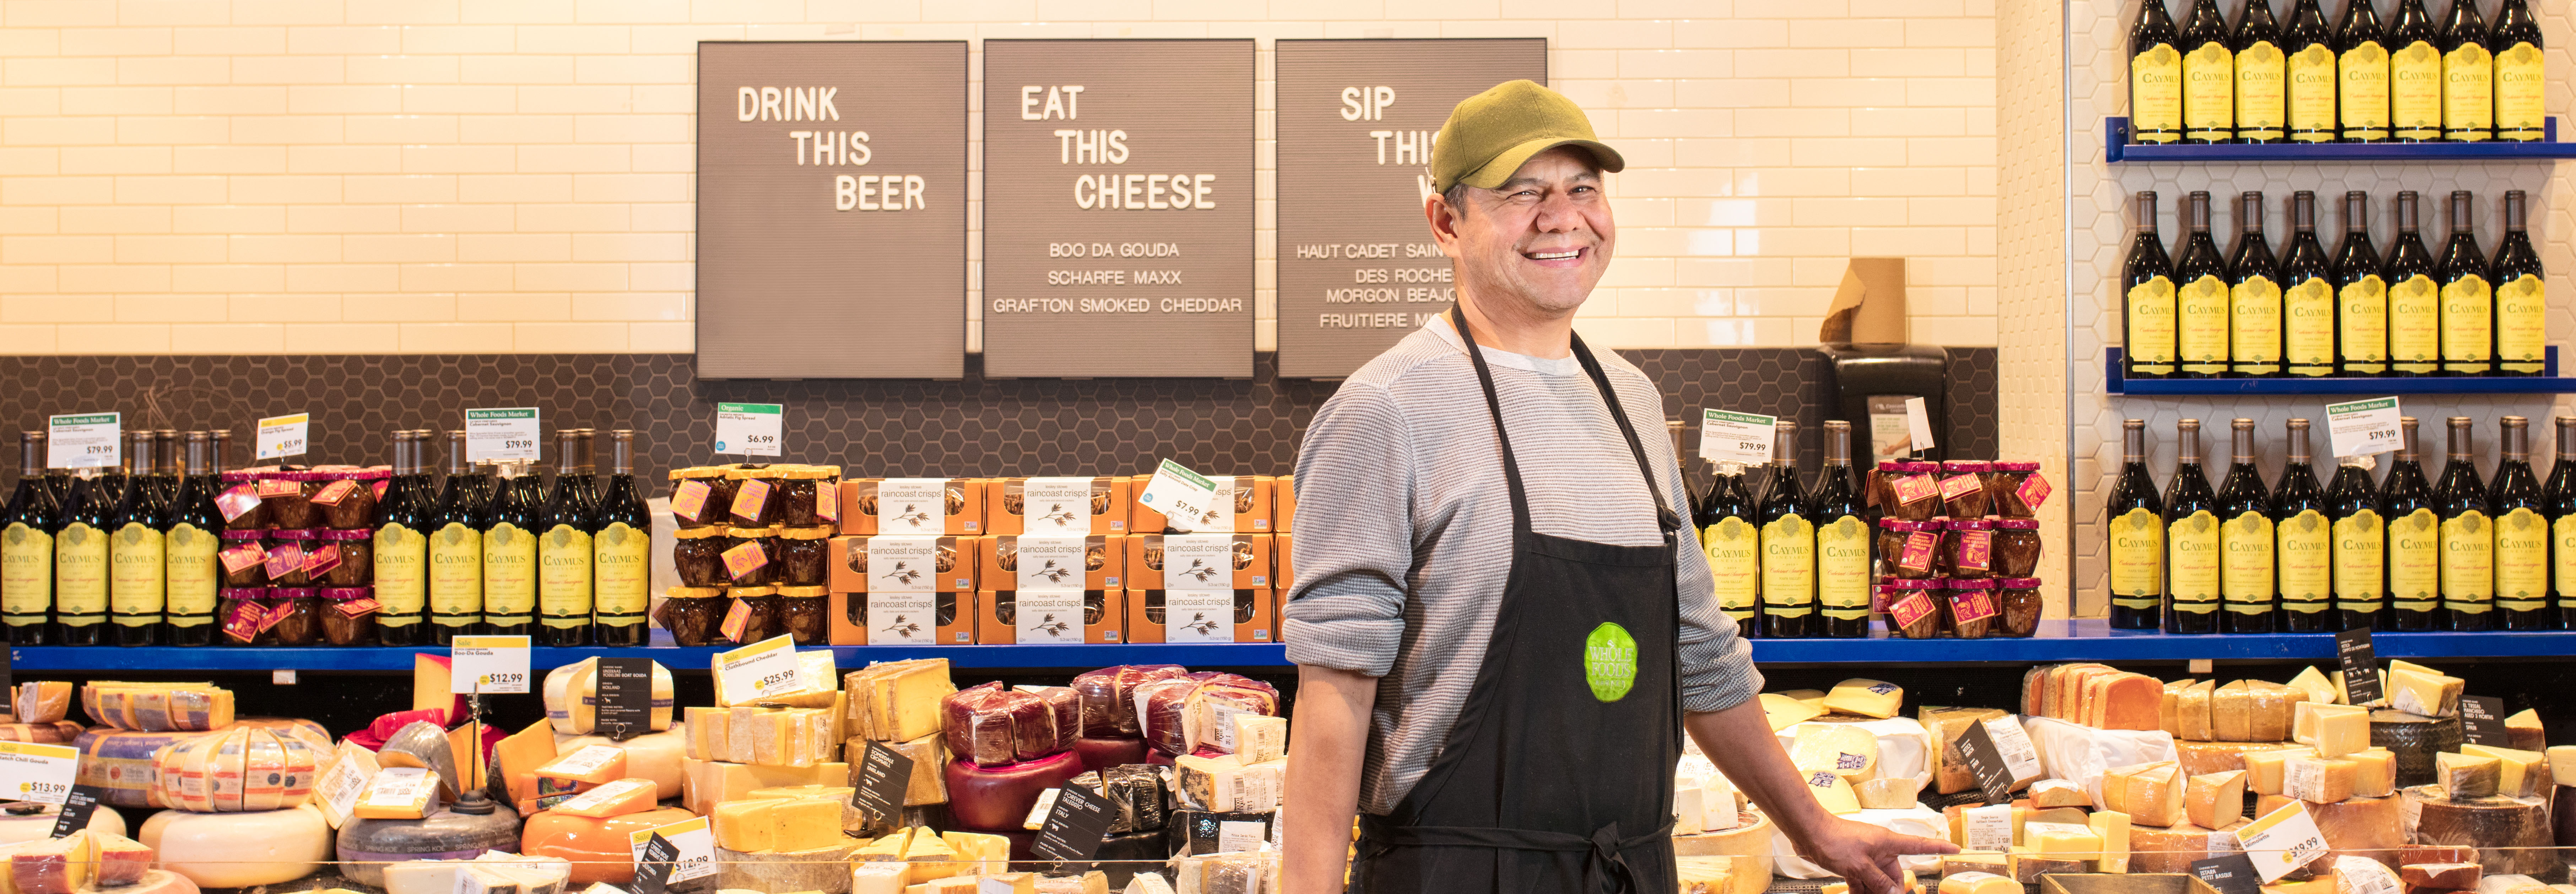 whole-foods-stores-careers-banner